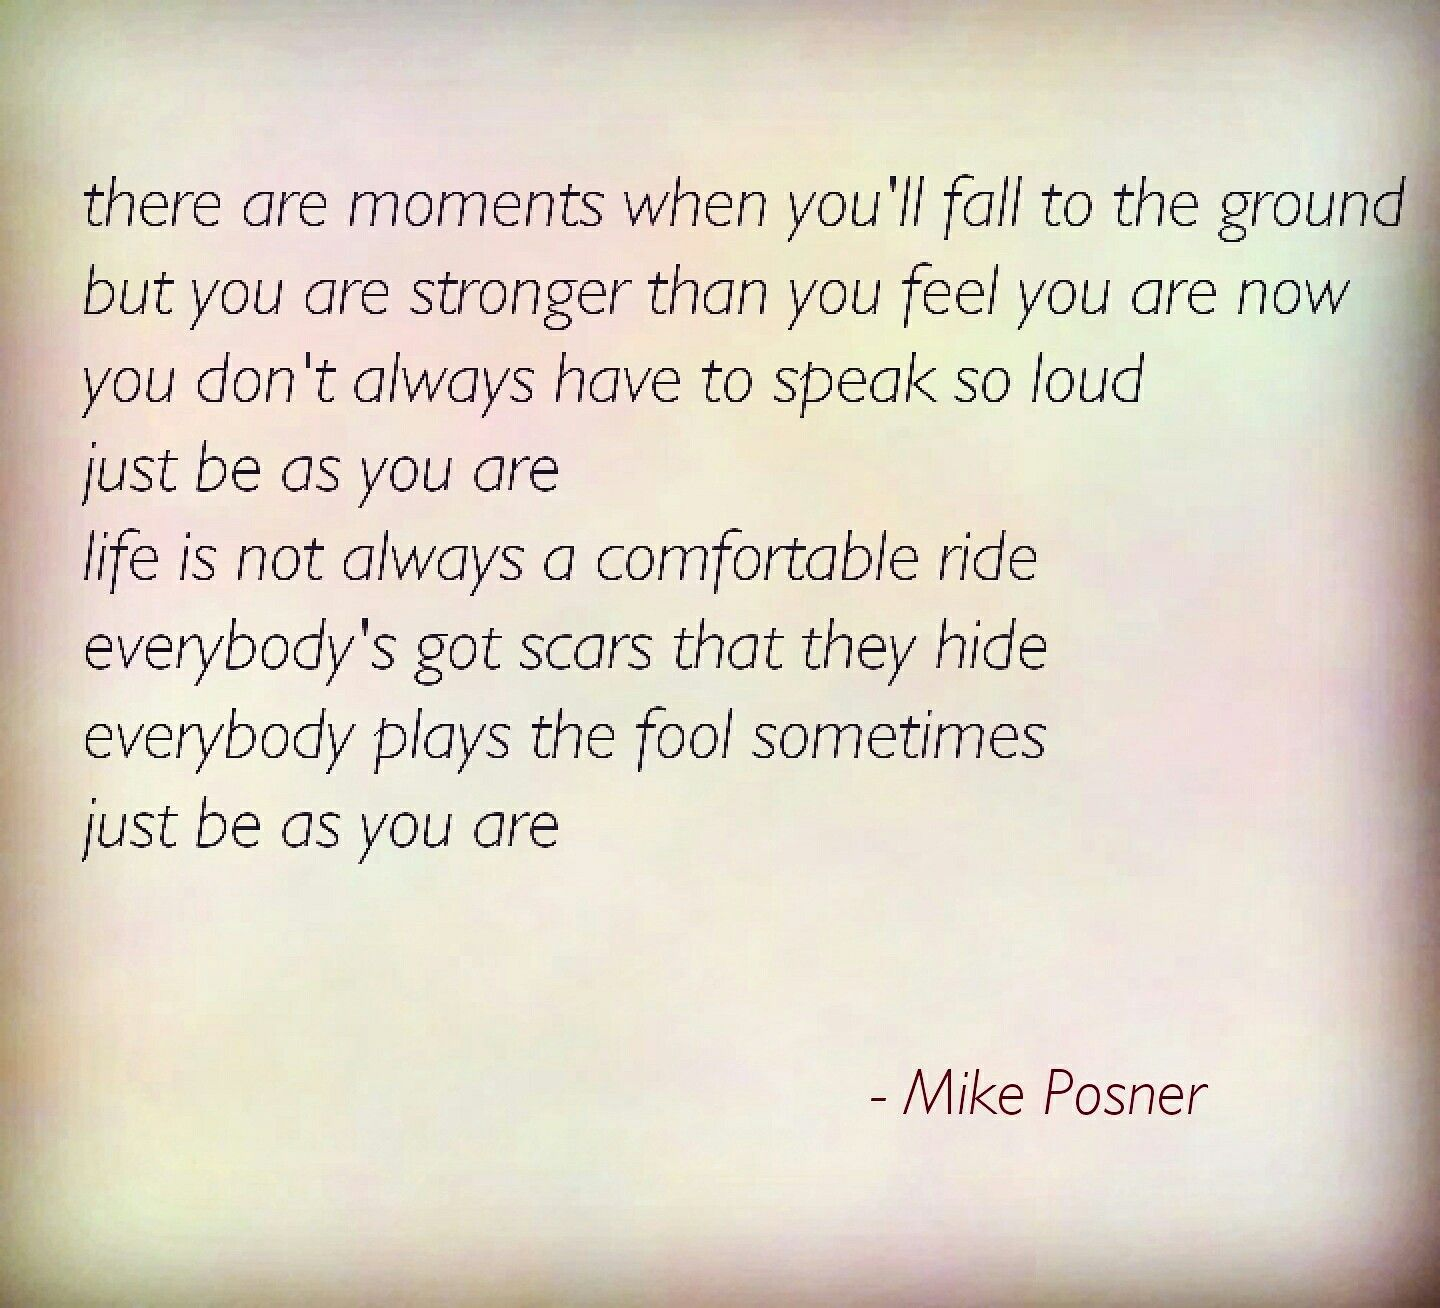 Mike Posner Be As You Are Lyrics Song Quotes Inspirational Quotes Wonderful Words